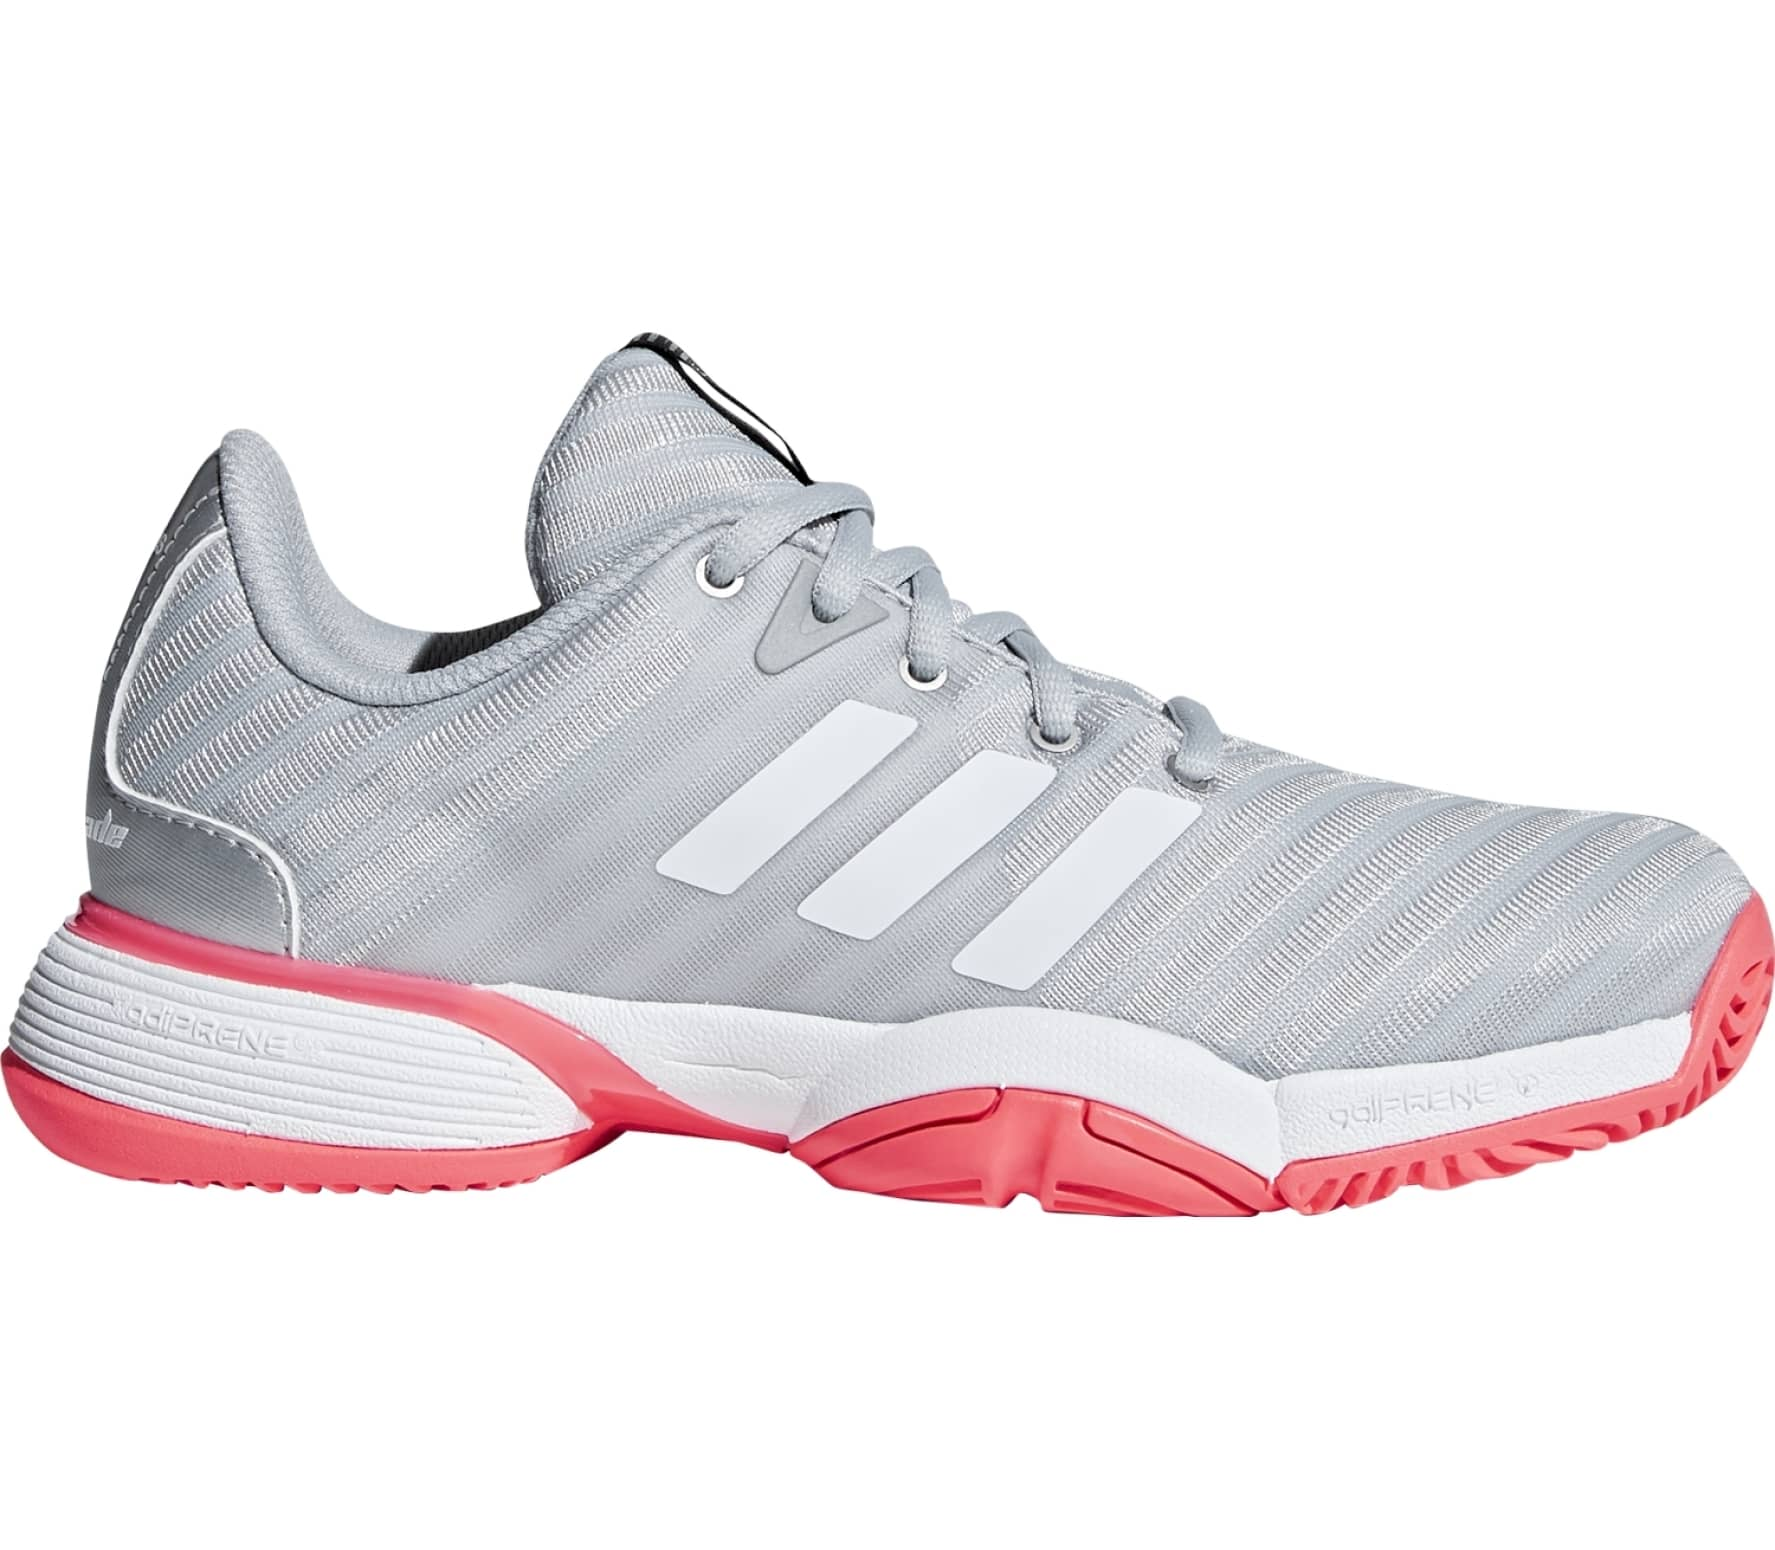 adidas performance Barricade 2018 xJ Children tennis shoes (silver)